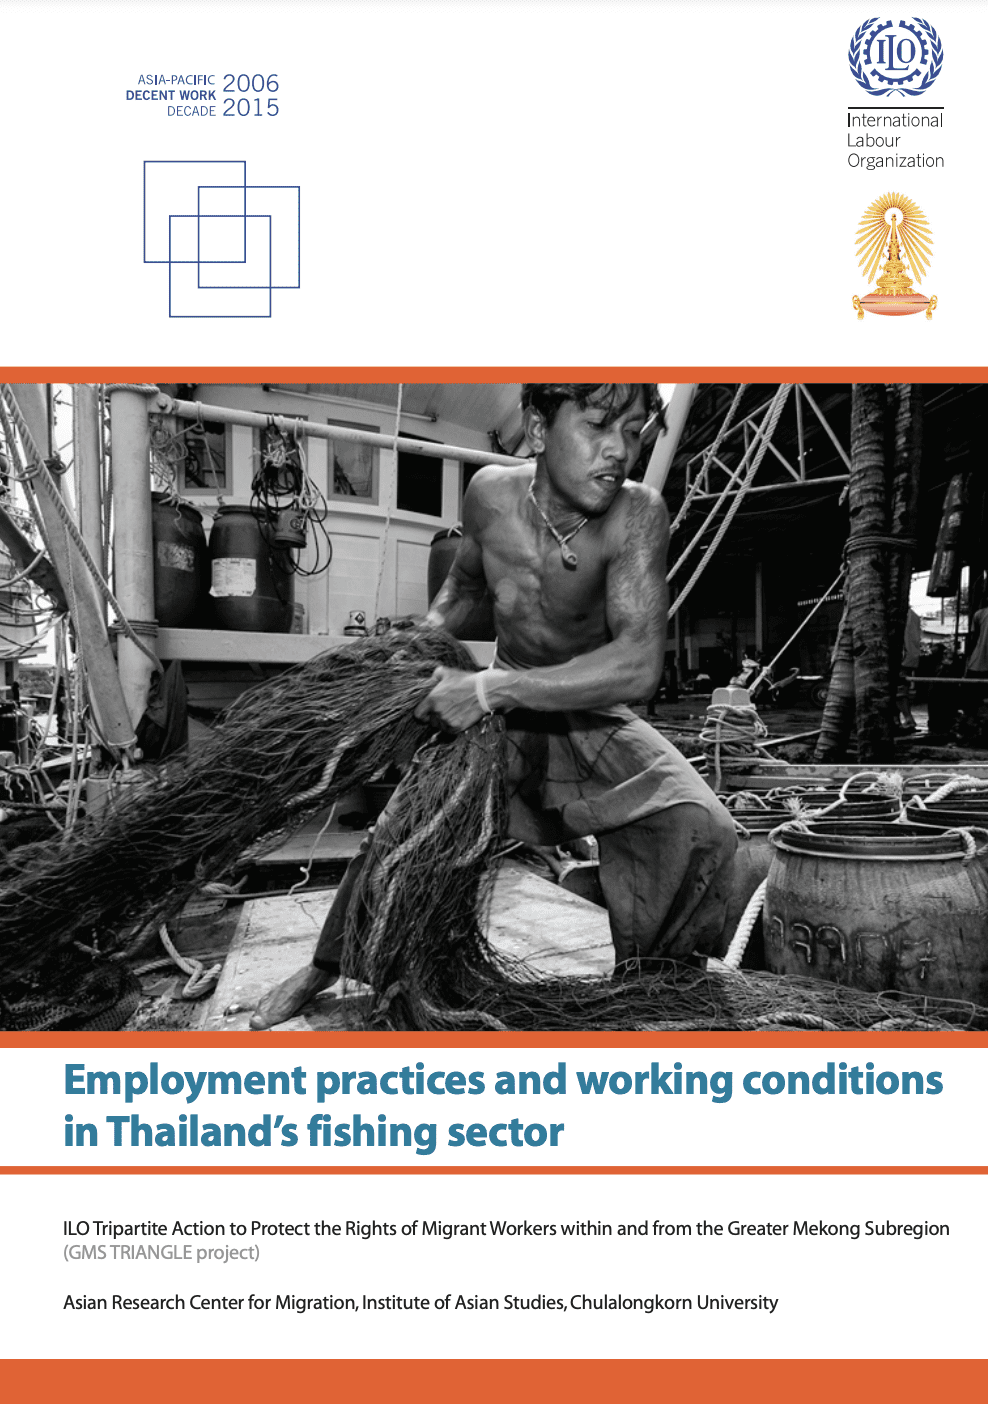 Employment practices and working conditions in Thailand's fishing sector